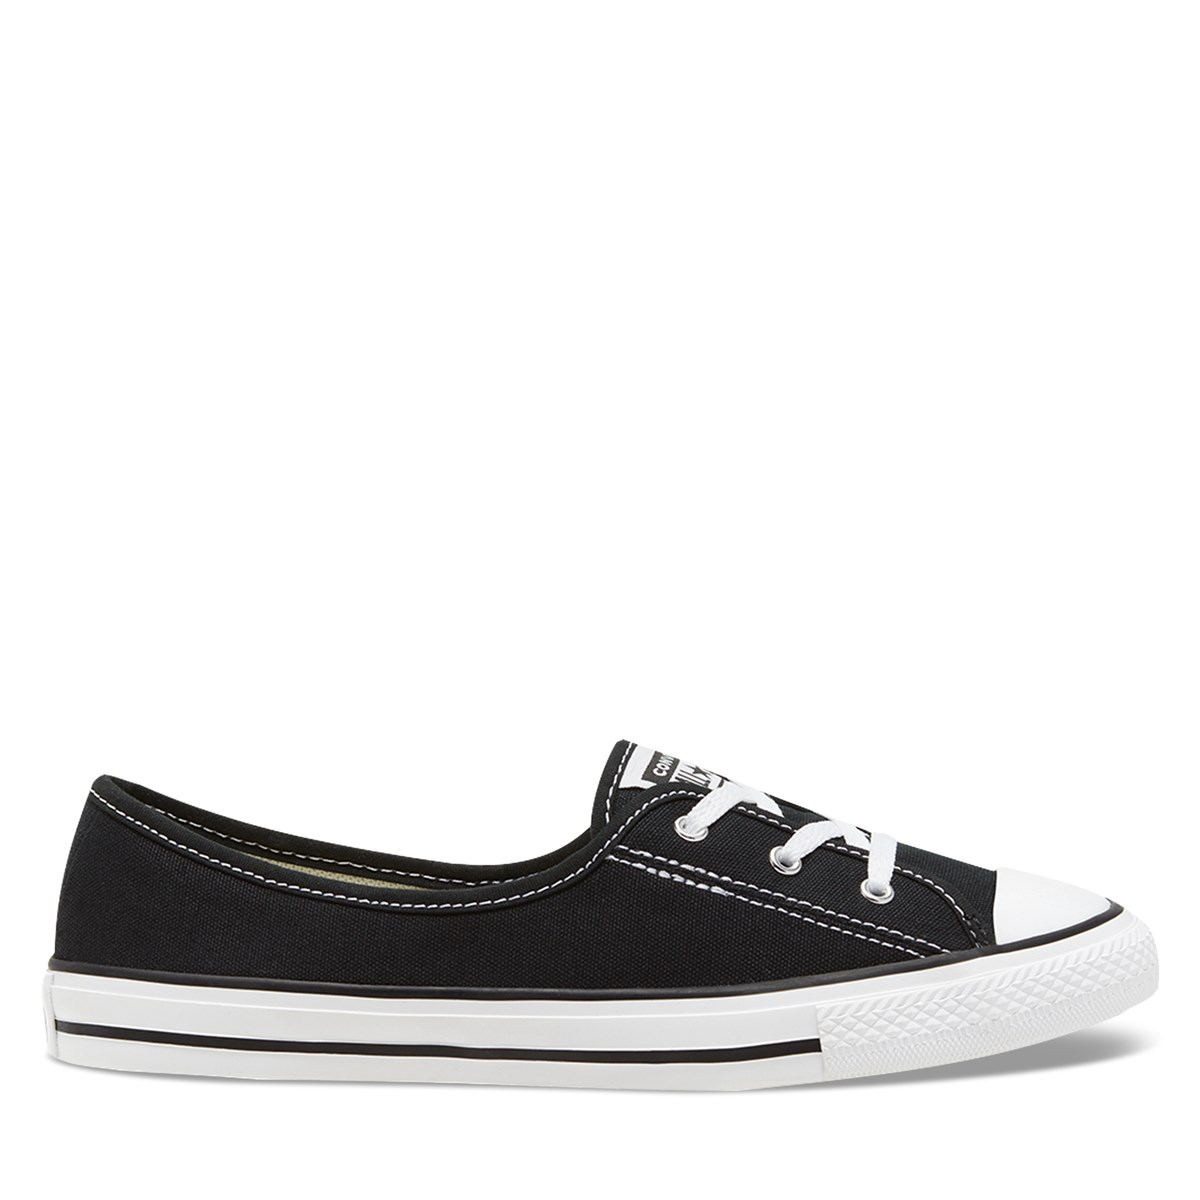 Women's Chuck Taylor All Star Ballet Slip/Ons in Black